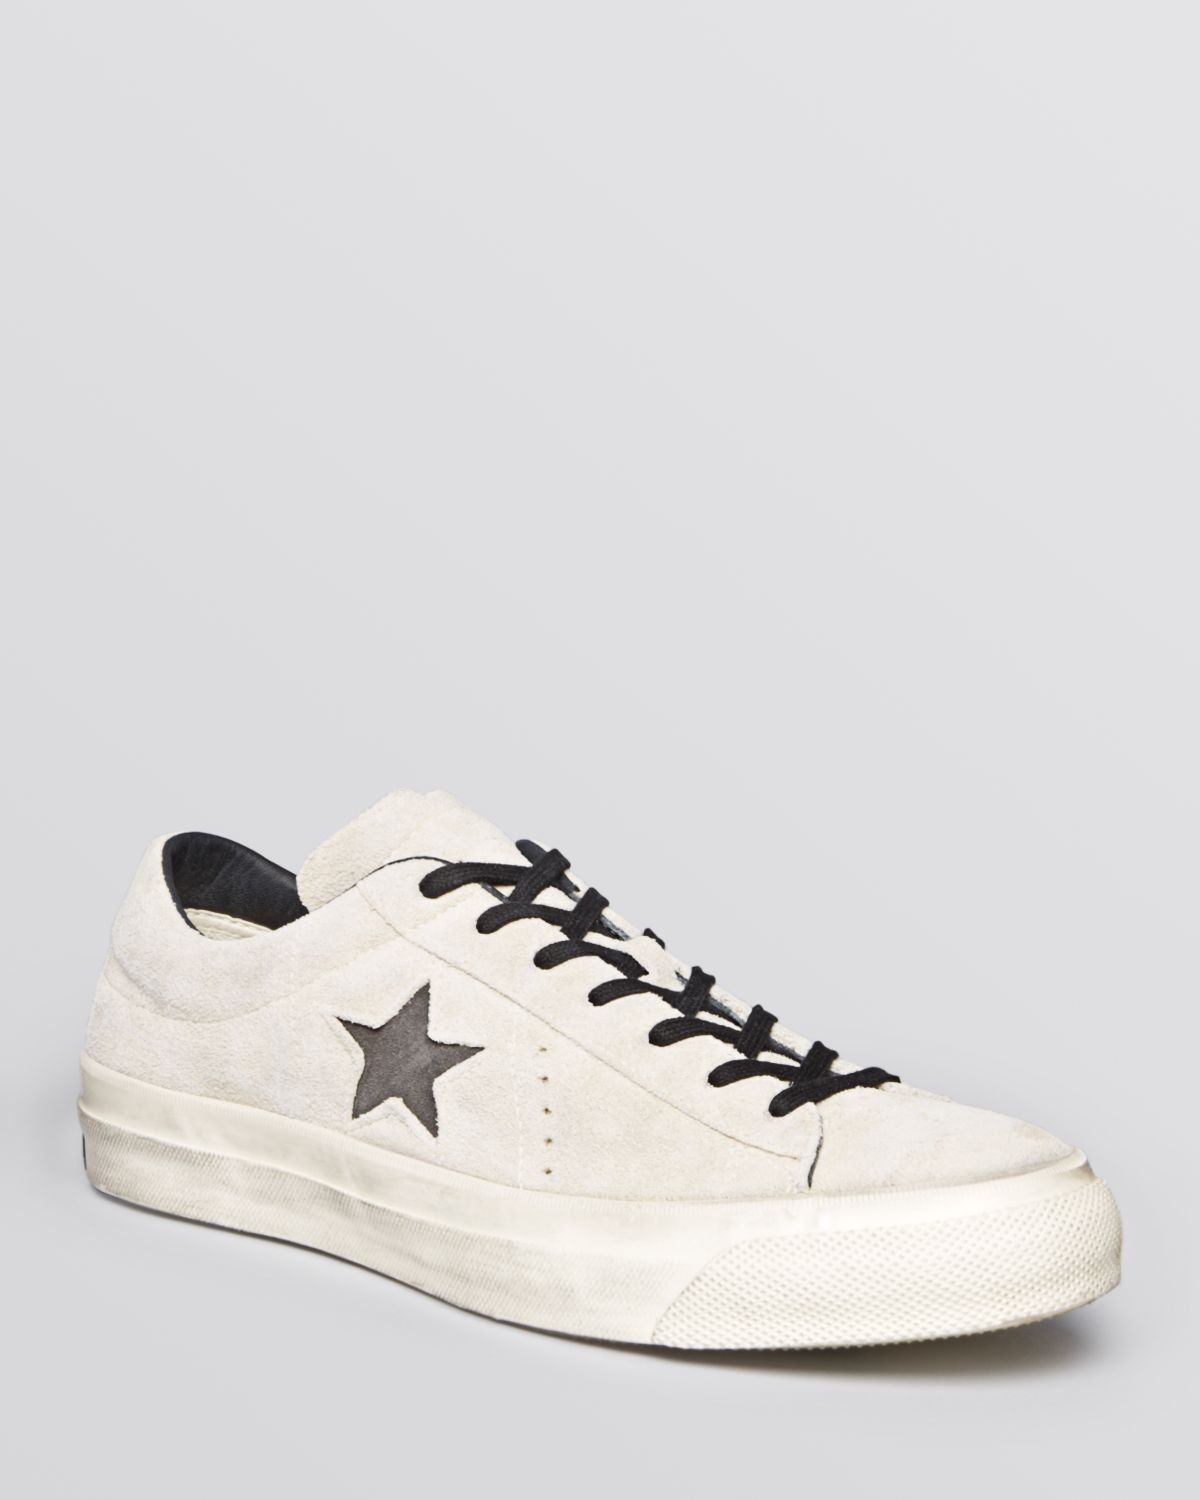 780e2c422a1b ... sweden gallery. previously sold at bloomingdales mens john varvatos  converse 5253b c7d7f